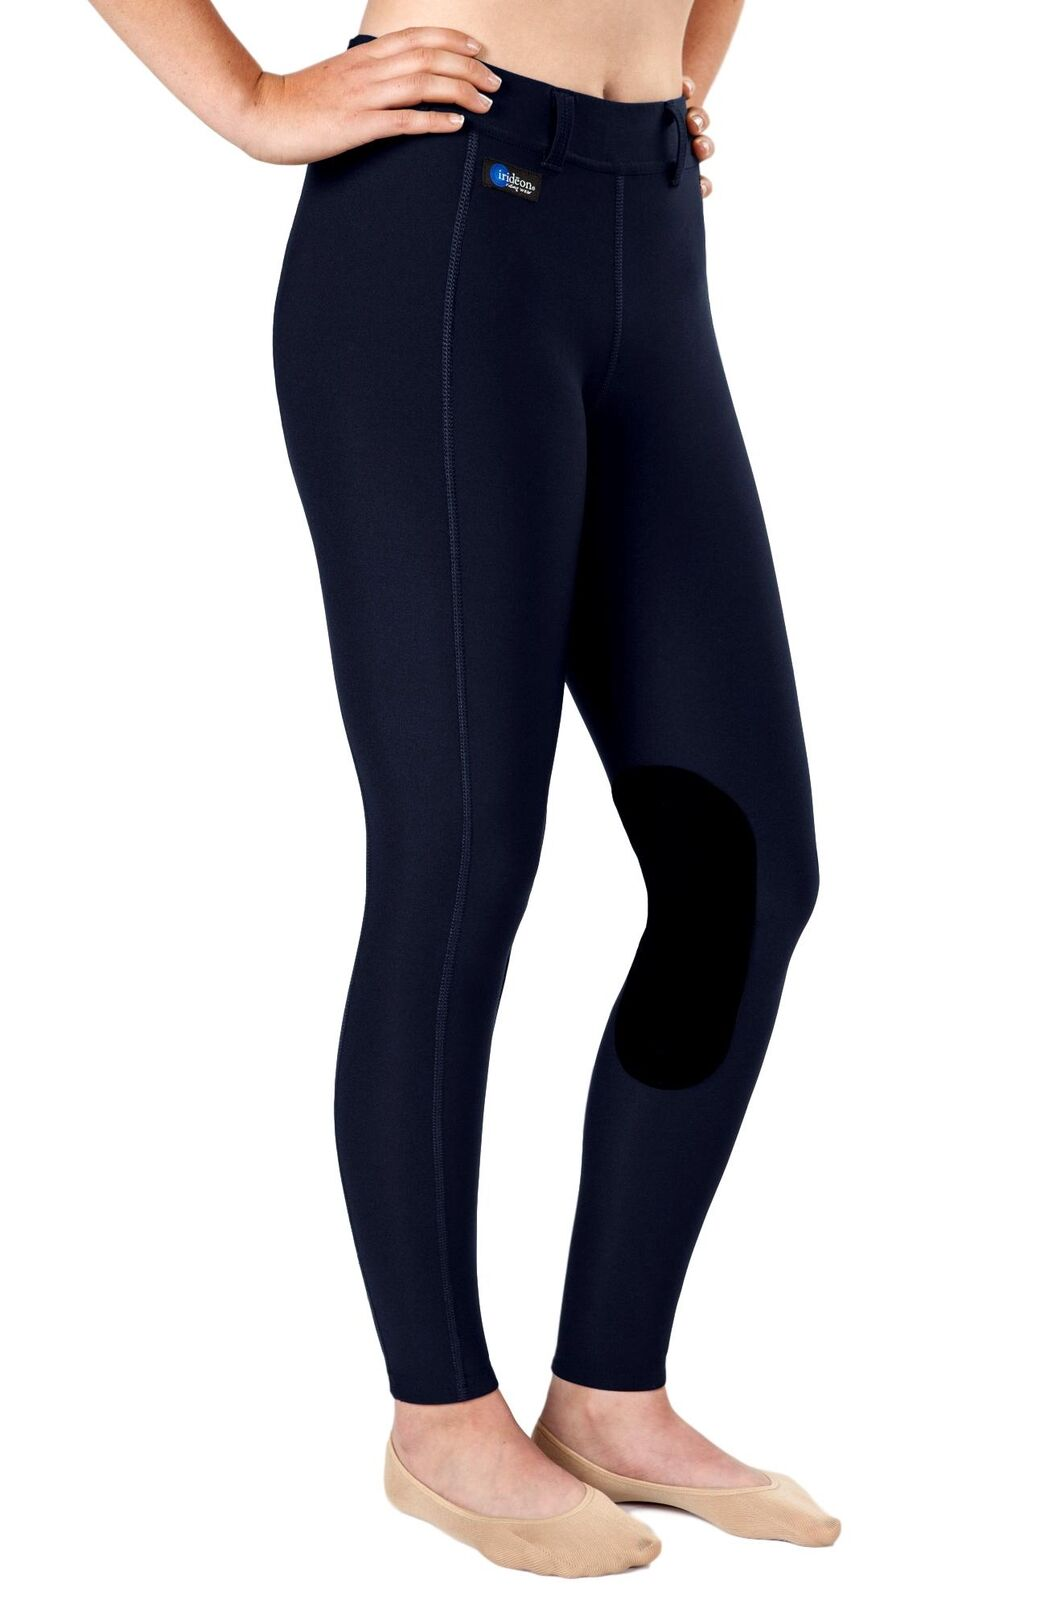 Irideon Issential Riding Tights with Flat No-Chafe Seams and Body Contouring